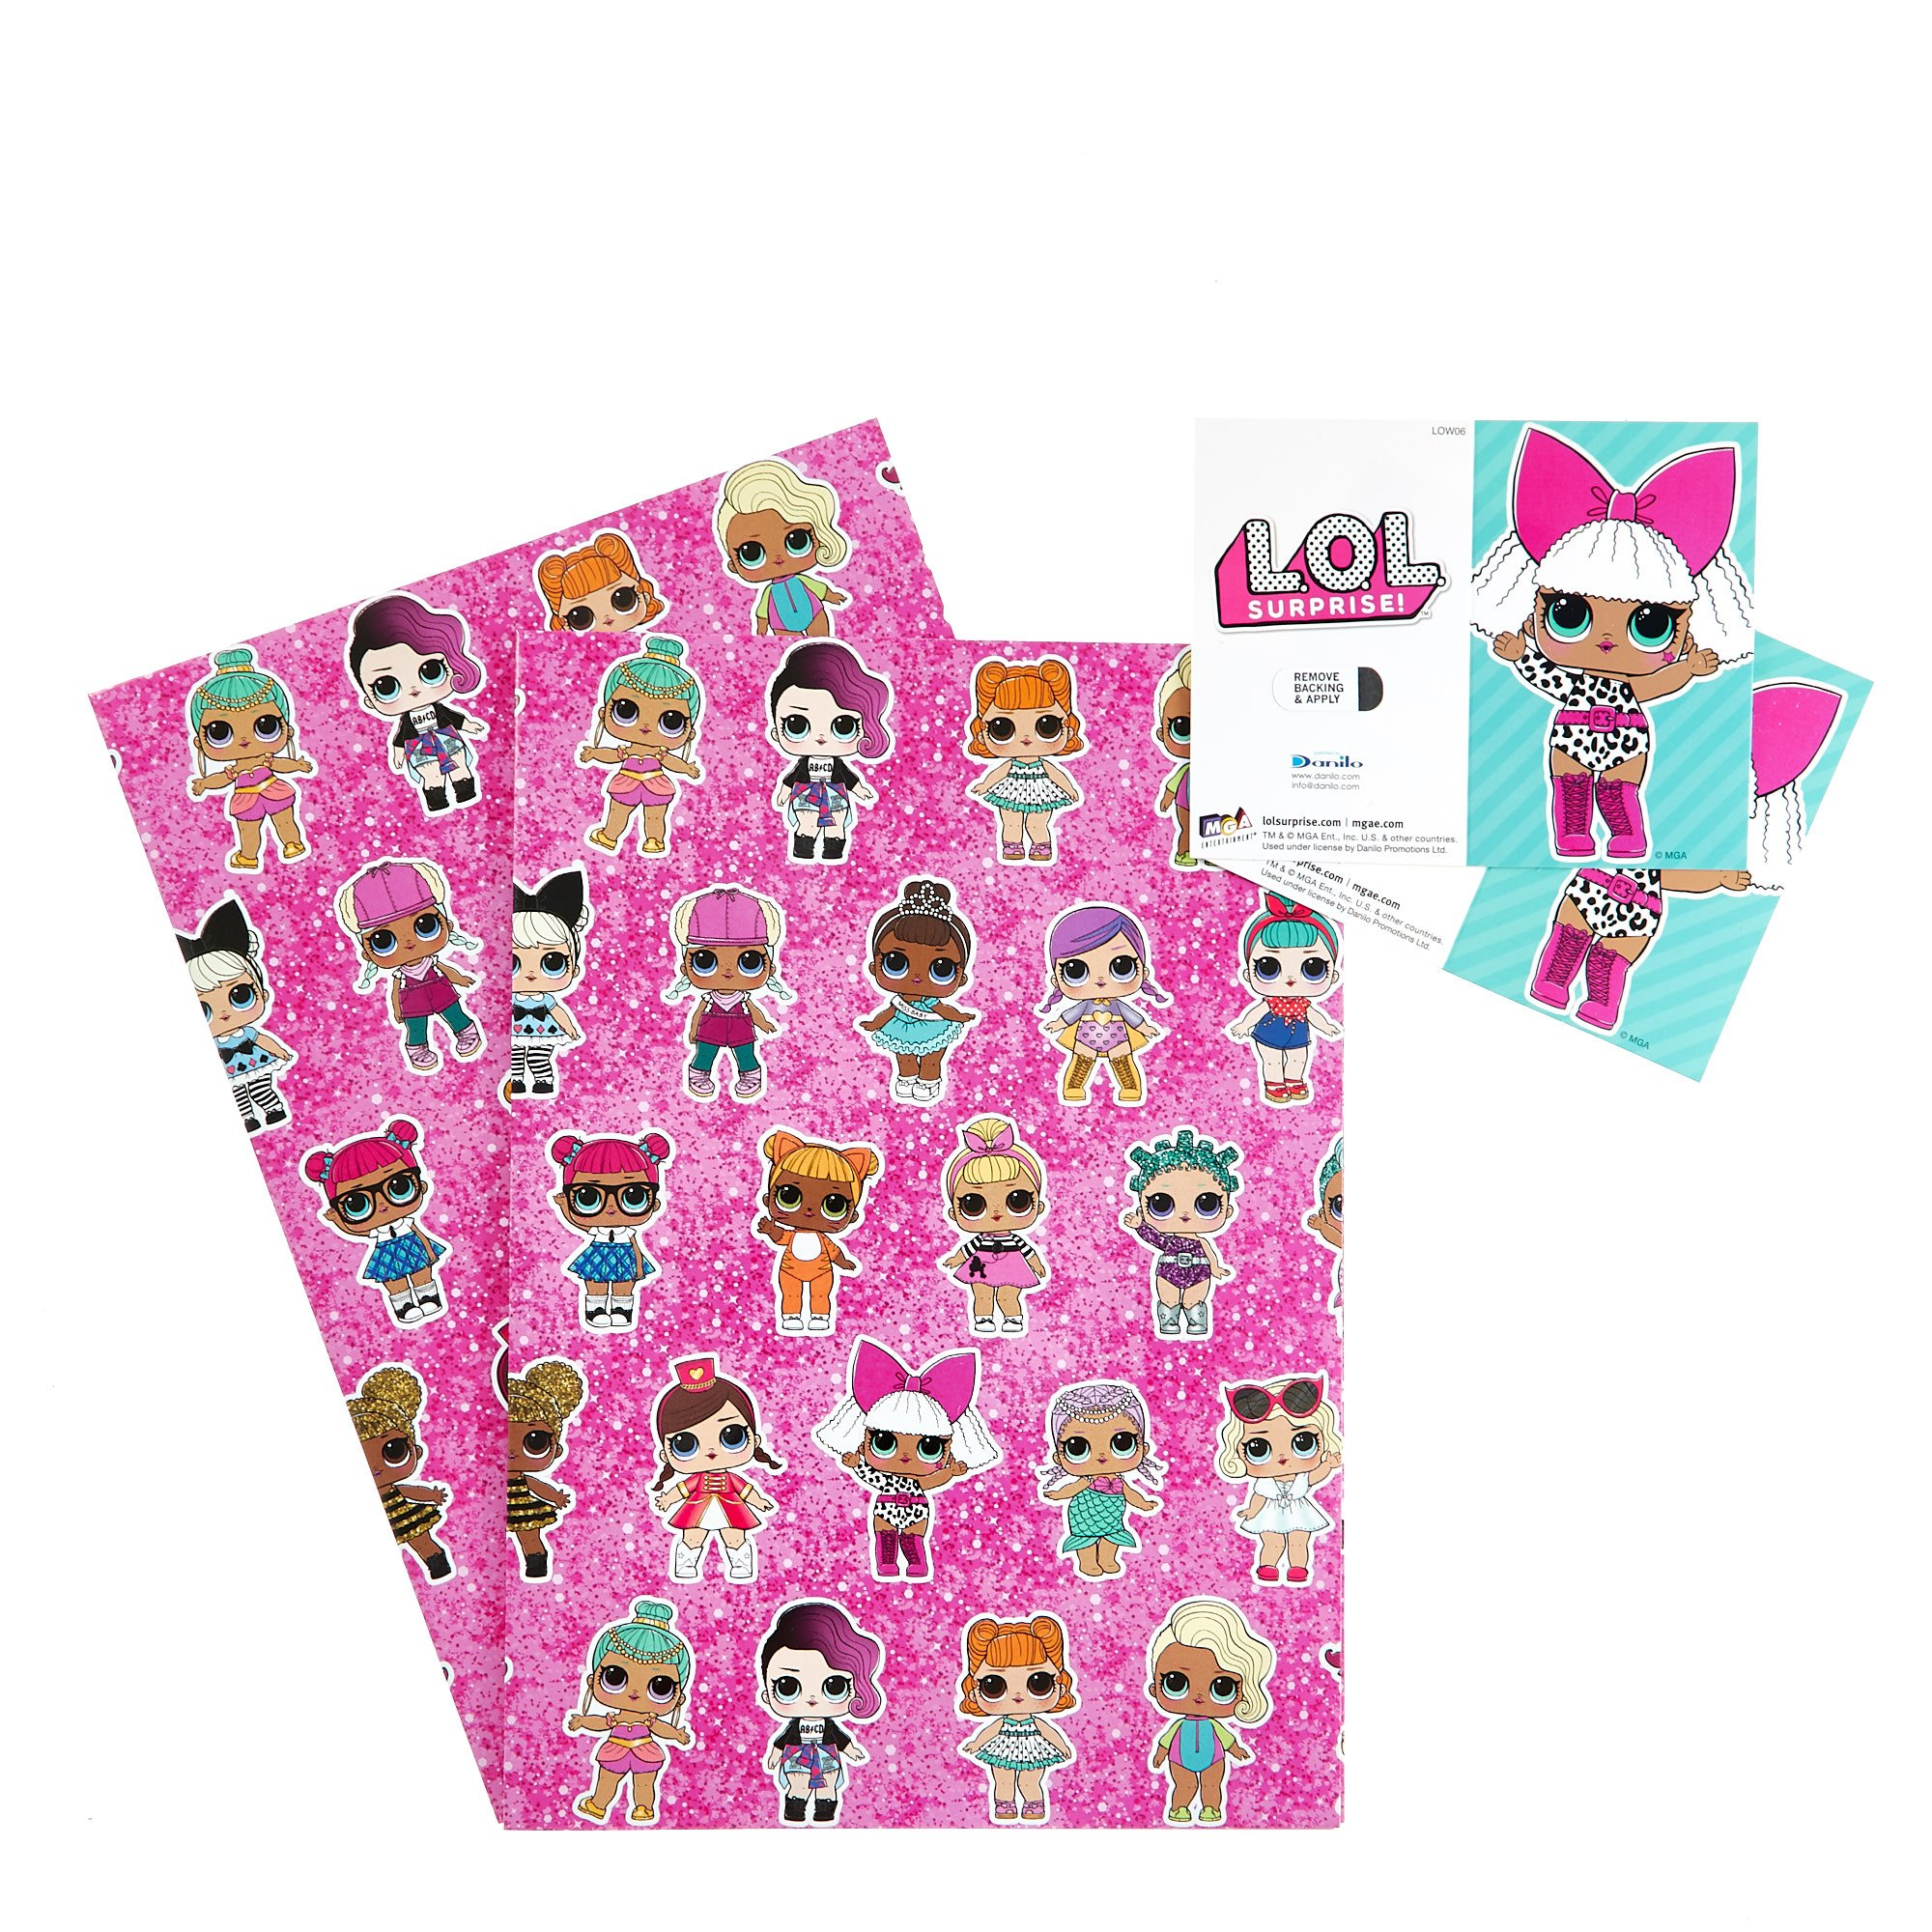 L.O.L. Surprise! Wrapping Paper & Gift Tags - Pack Of 3